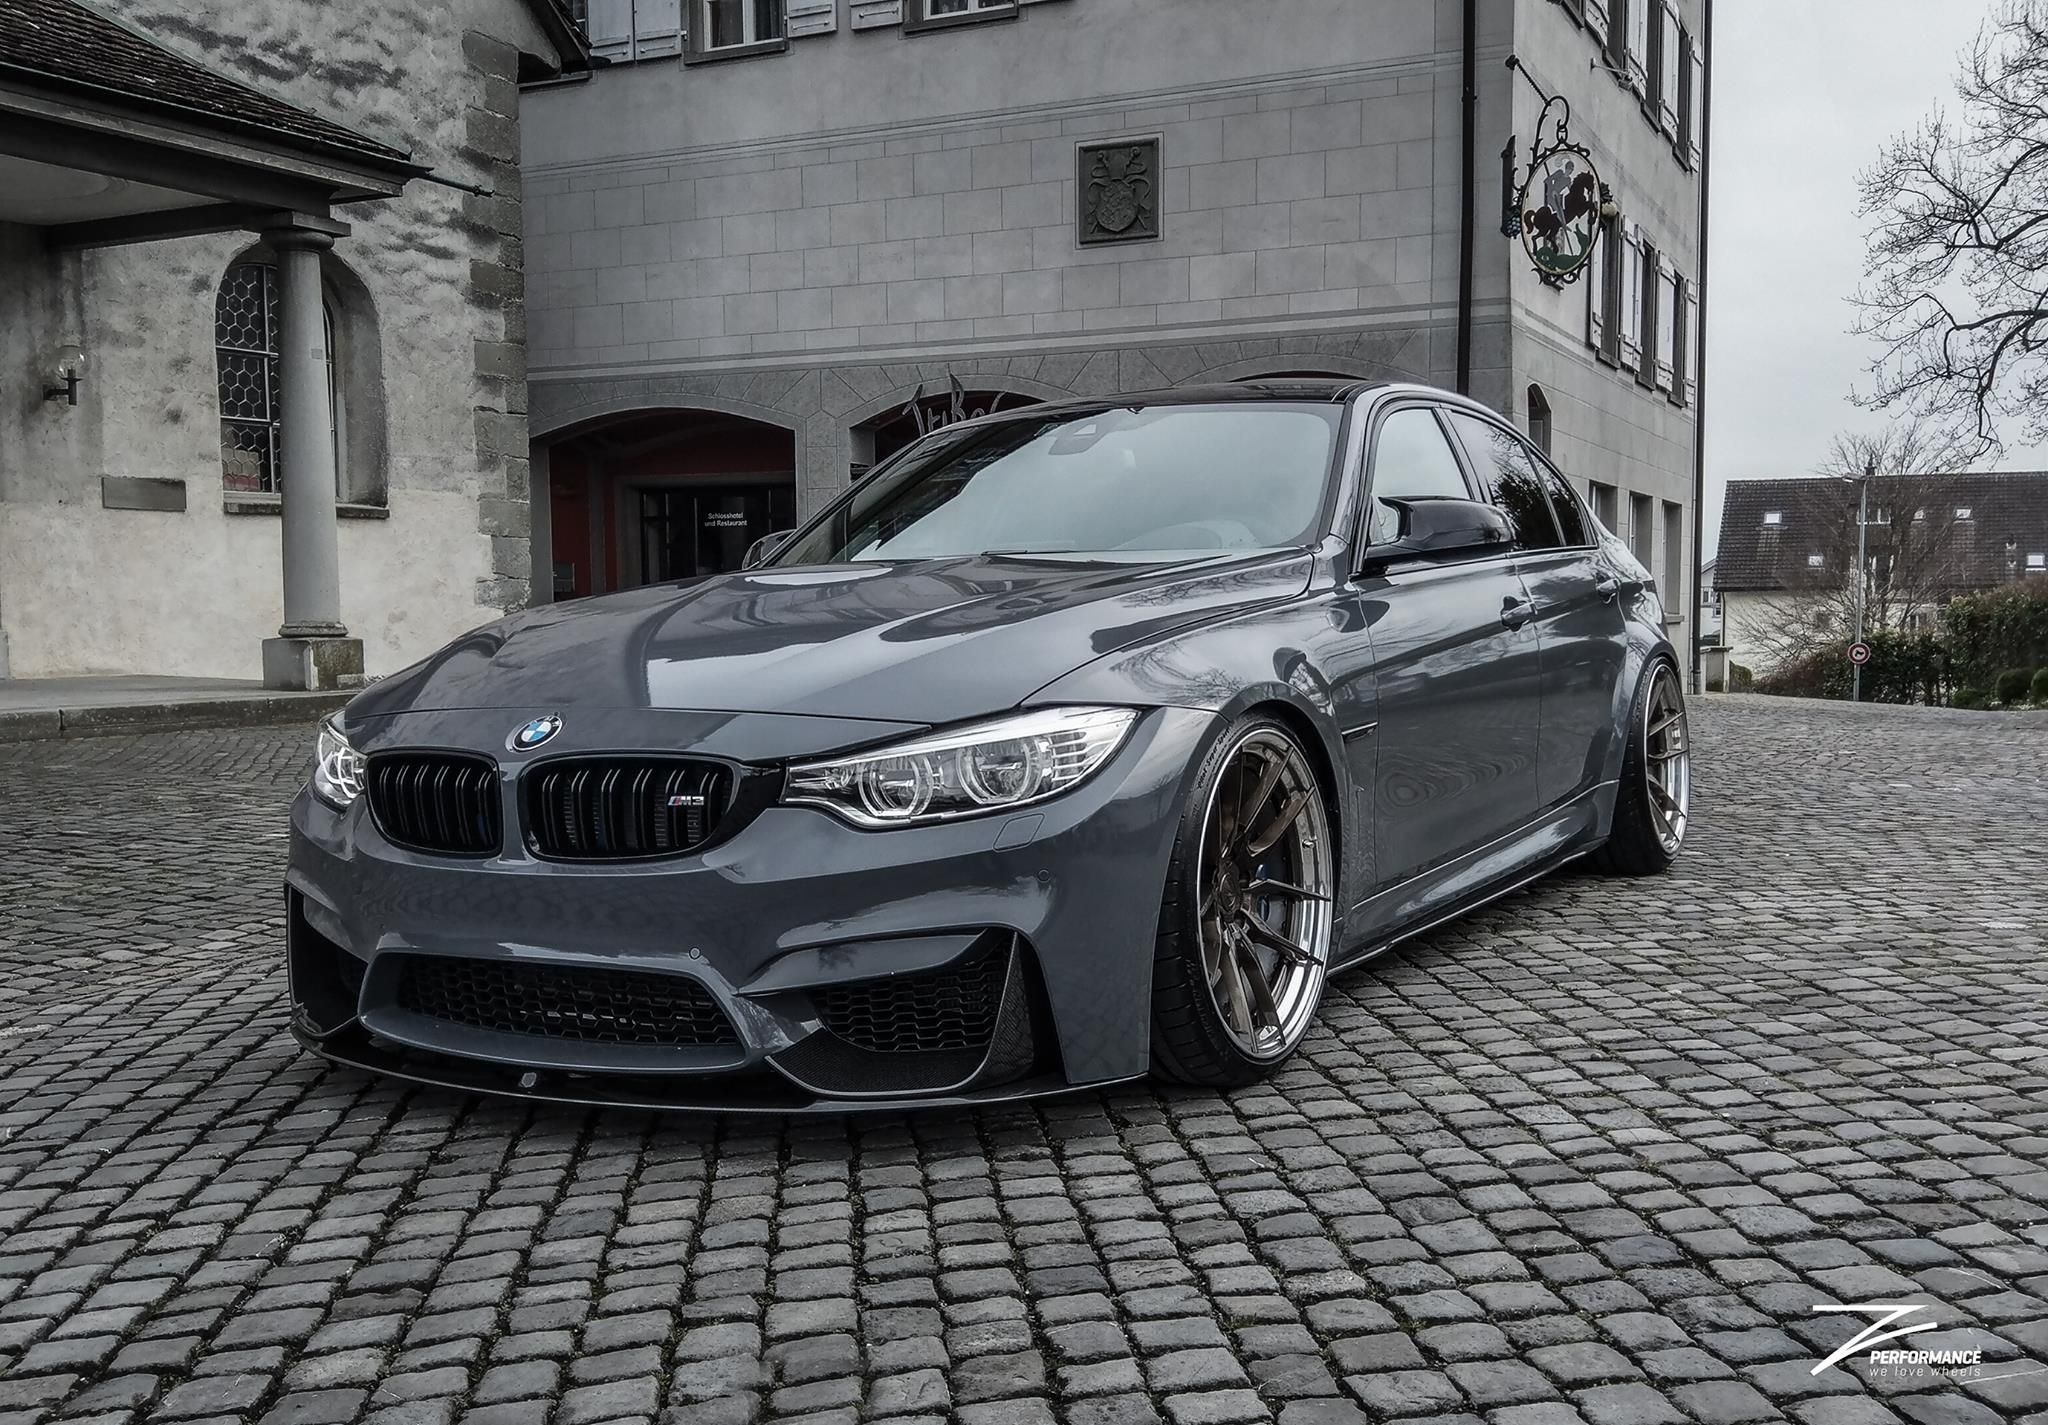 bmw f80 m3 sedan mineralgrey zperformance xdrive mperformance sheerdrivingpleasure. Black Bedroom Furniture Sets. Home Design Ideas